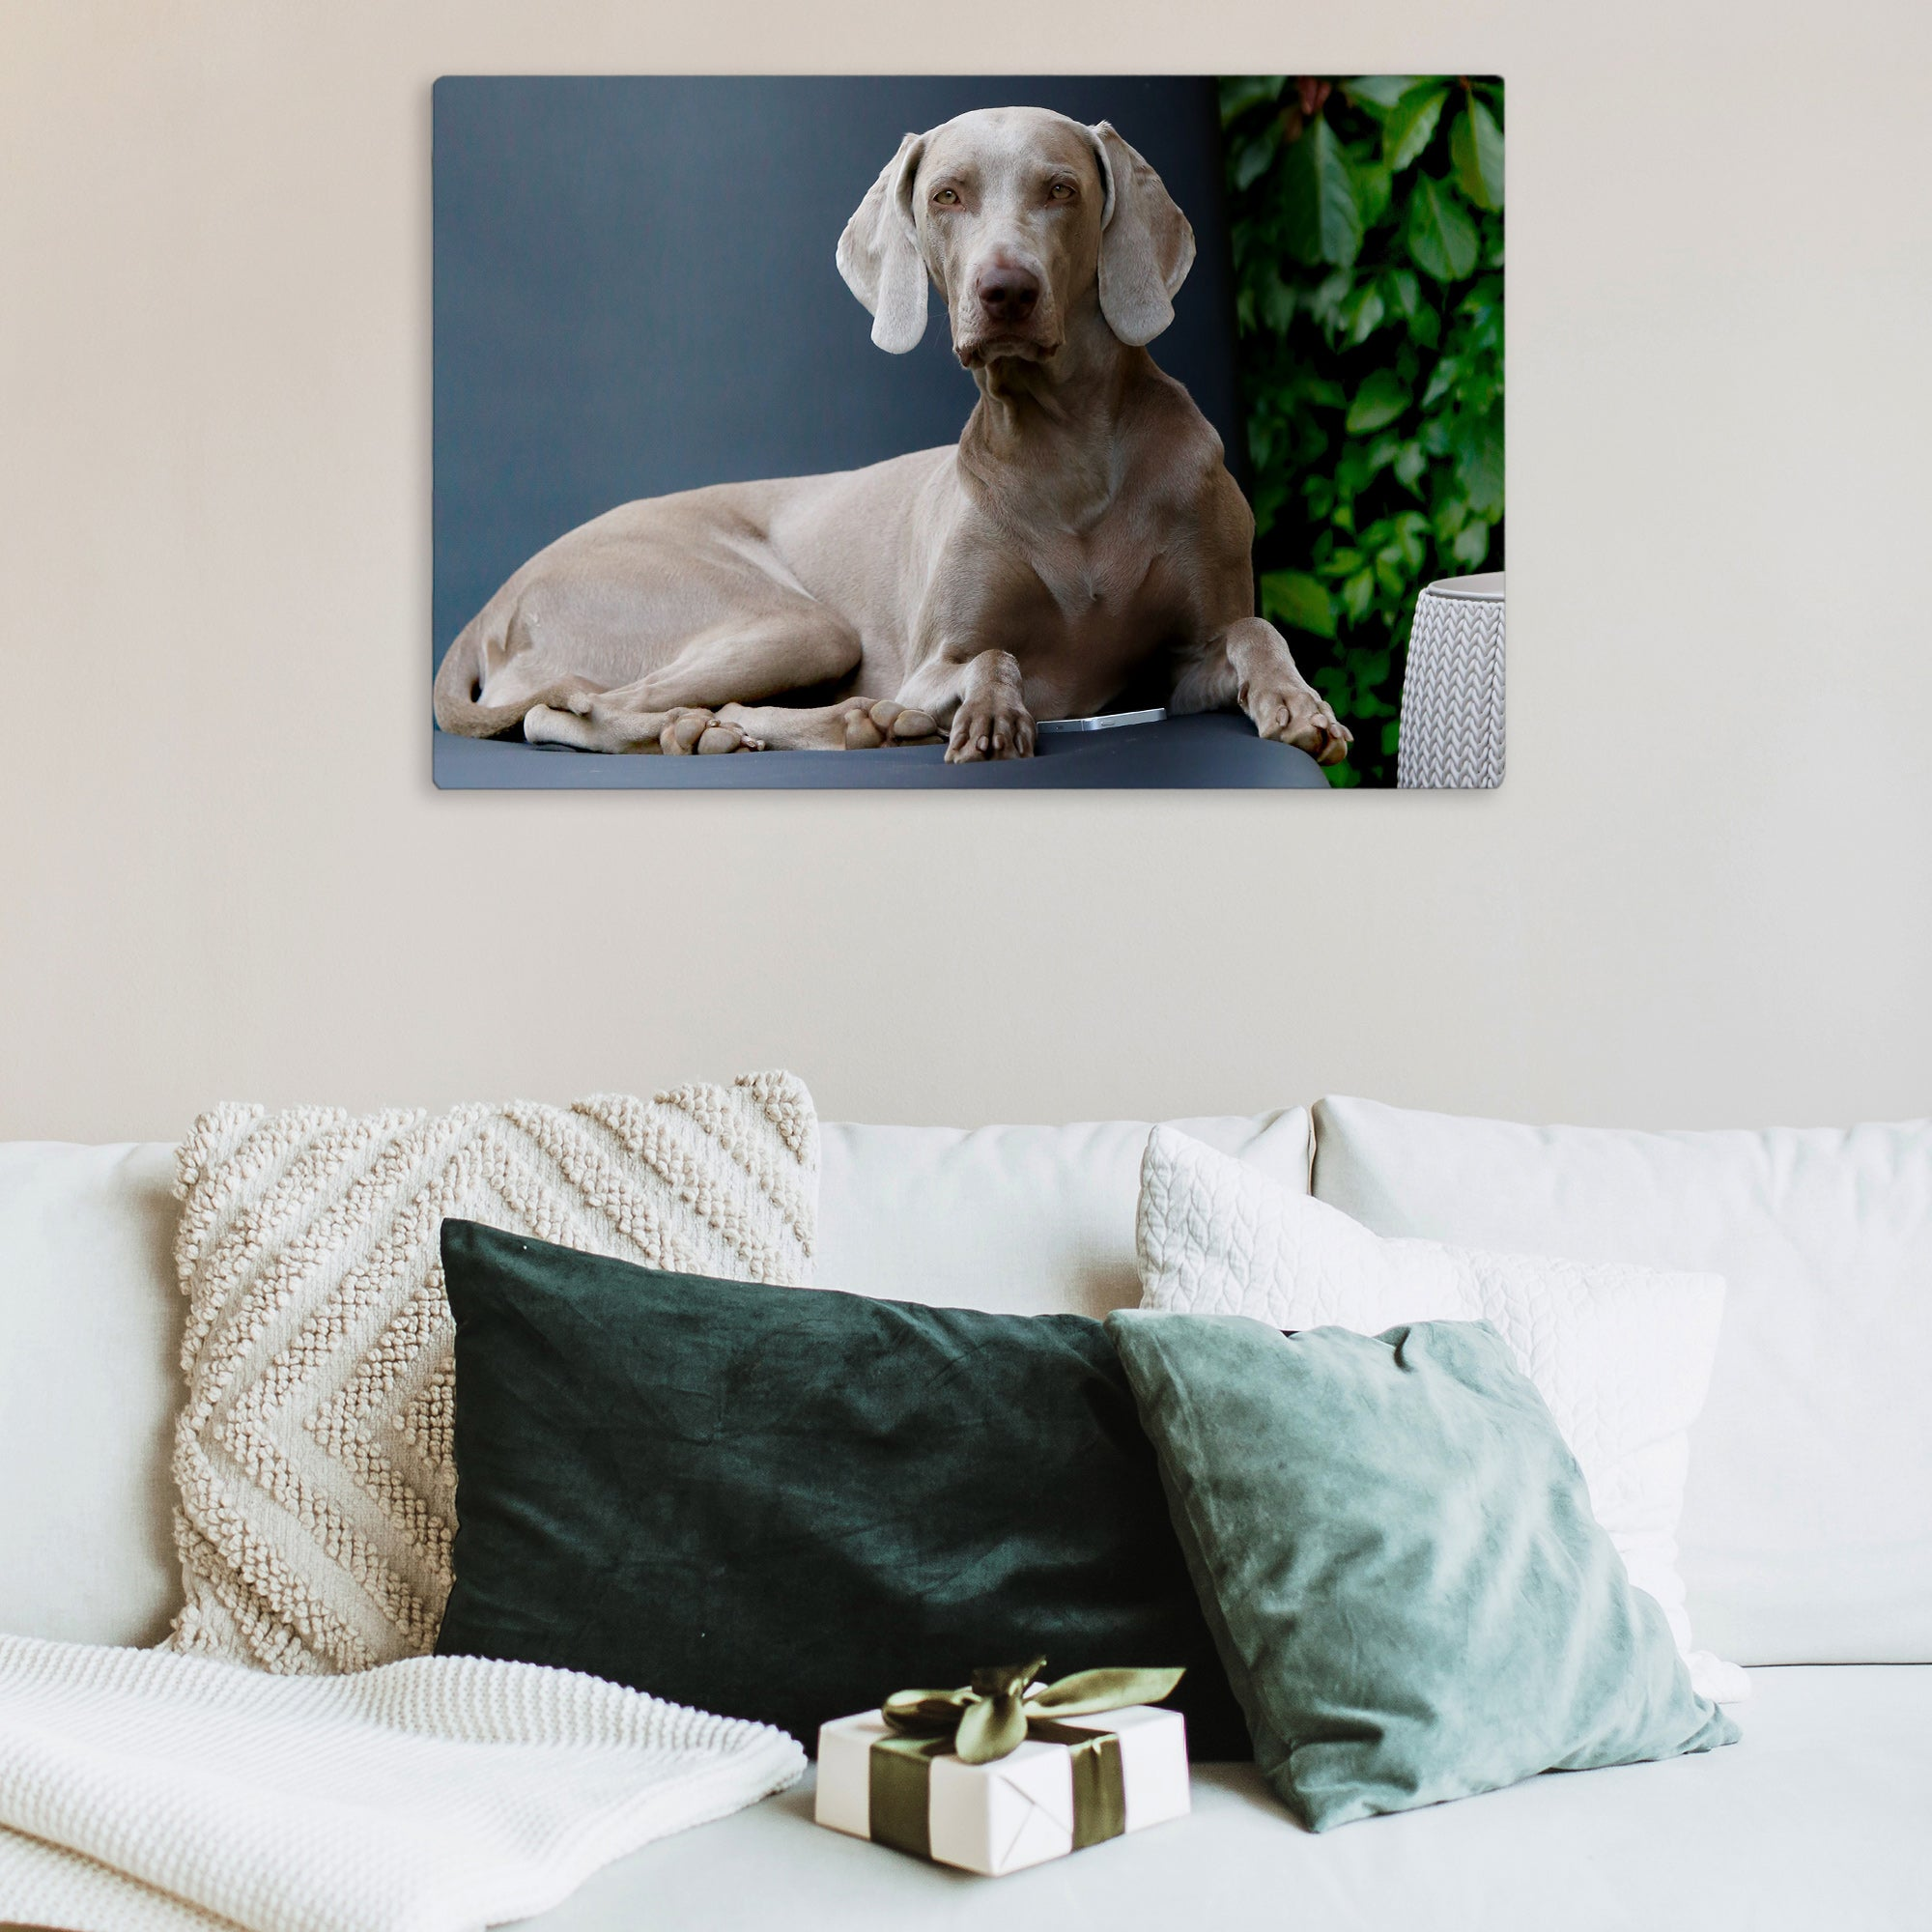 Personalized Photo of Dog Printed on HD Metal by Posterjack Canada